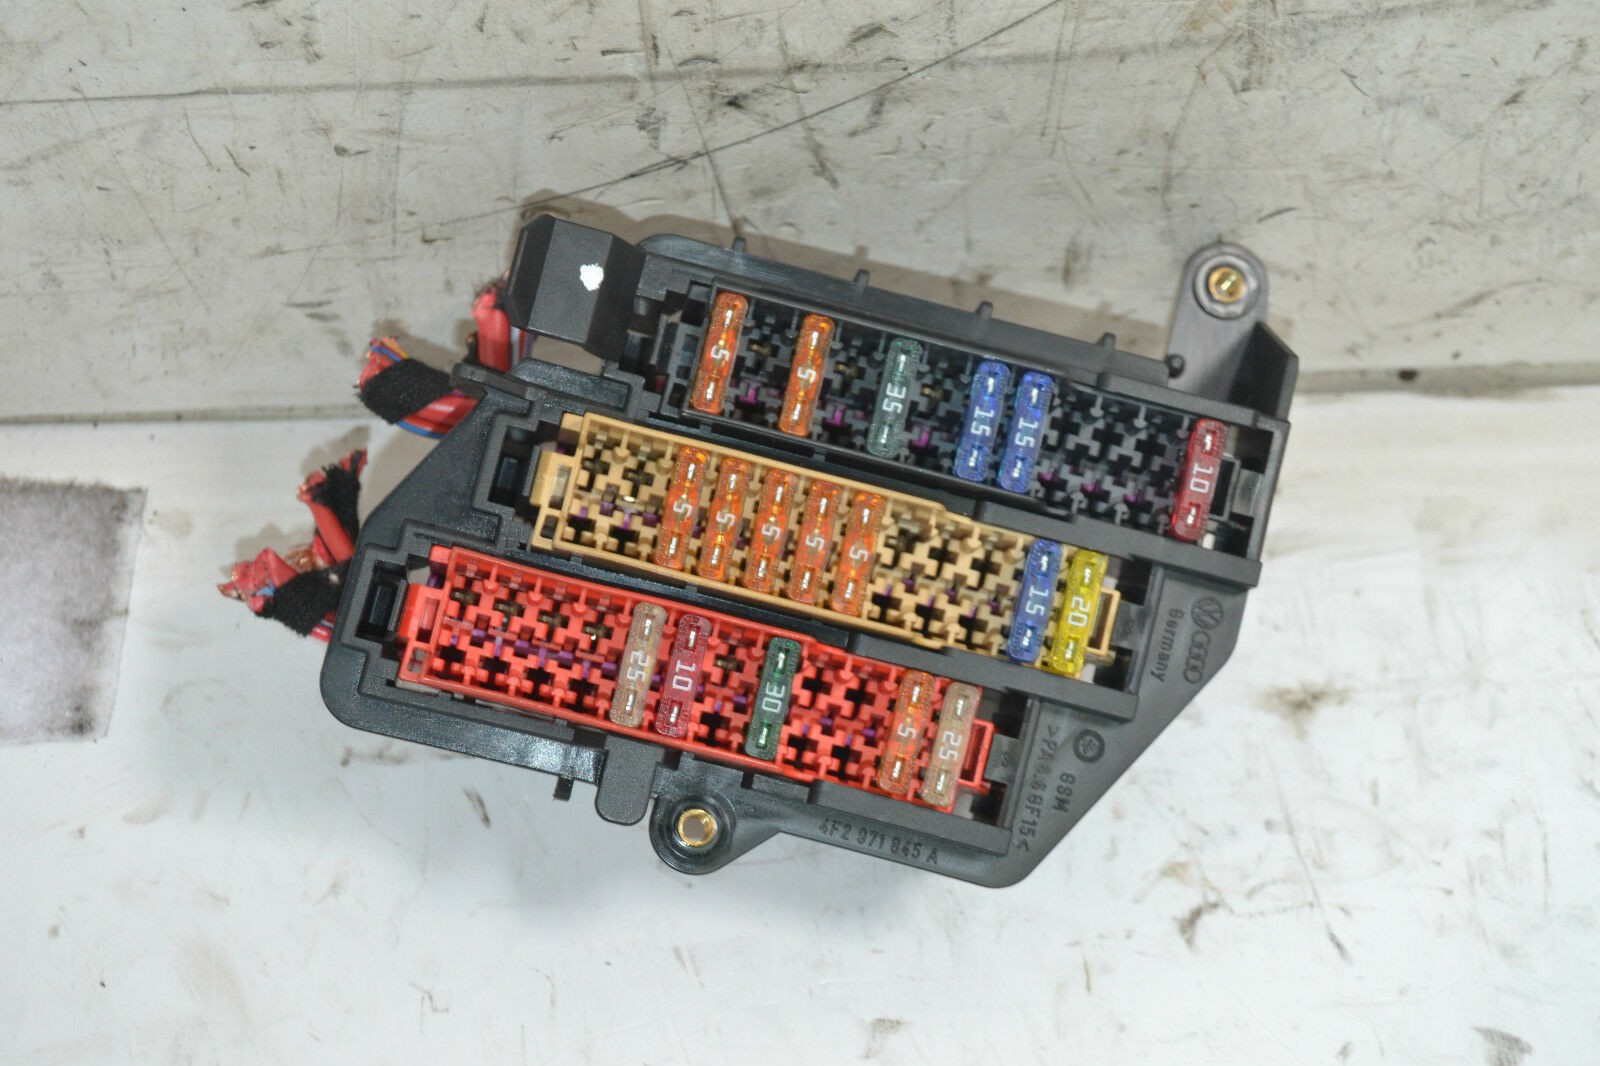 fuse box in audi a6 2006 trusted wiring diagram rh dafpods co Fuse Box Location Trunk Fuse Box Diagram